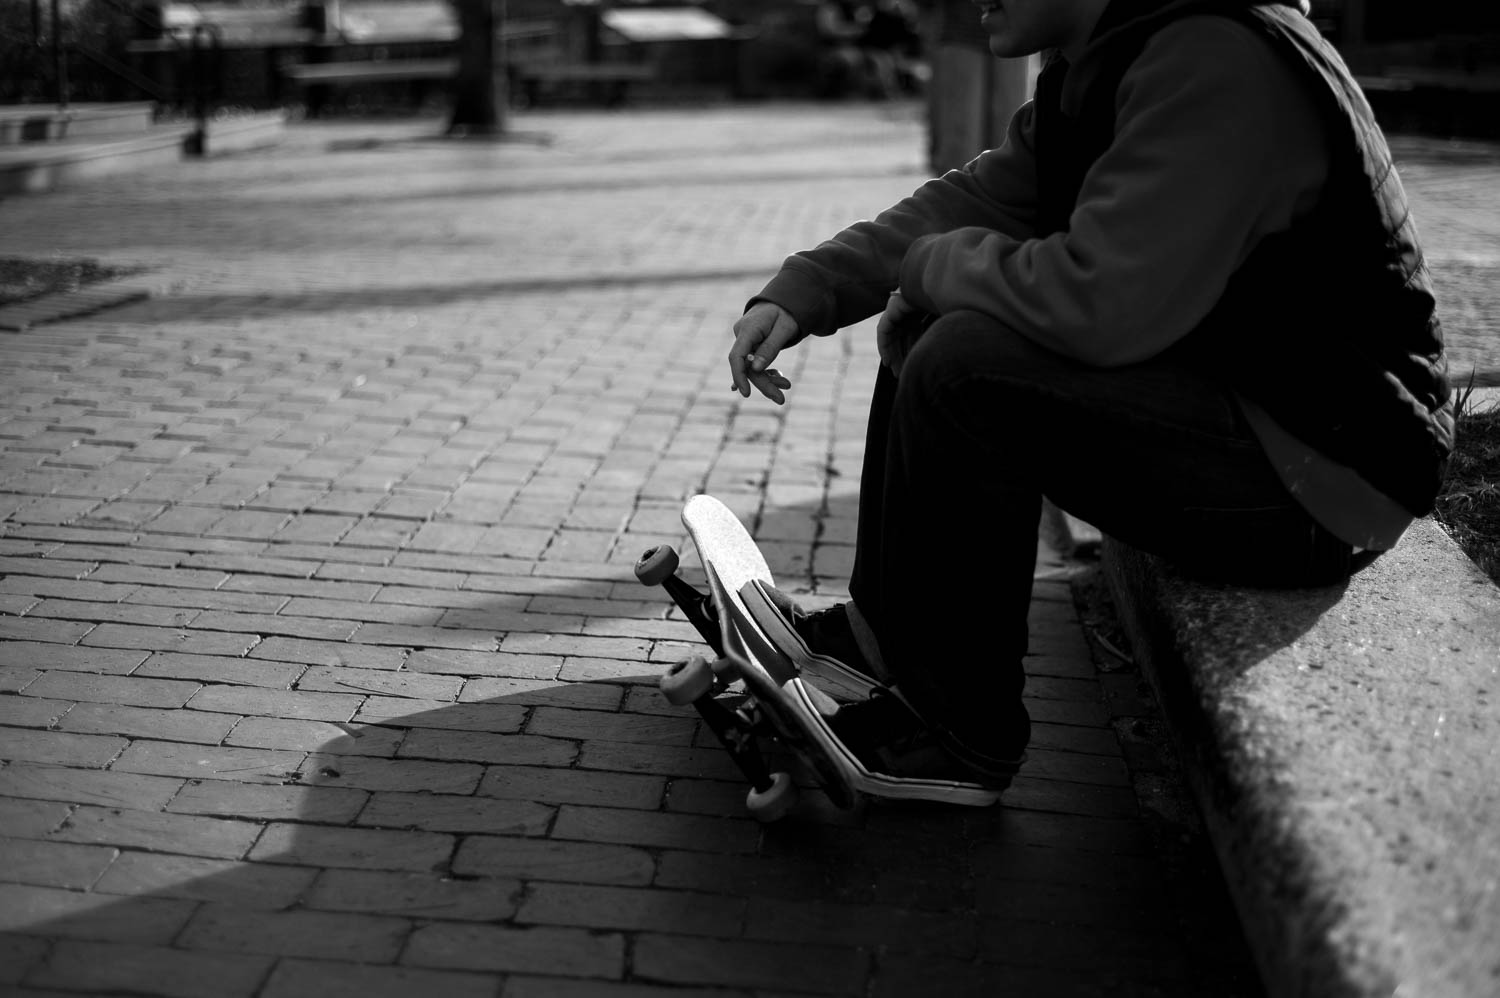 A black and white photo of a skateboarder smoking a cigarette